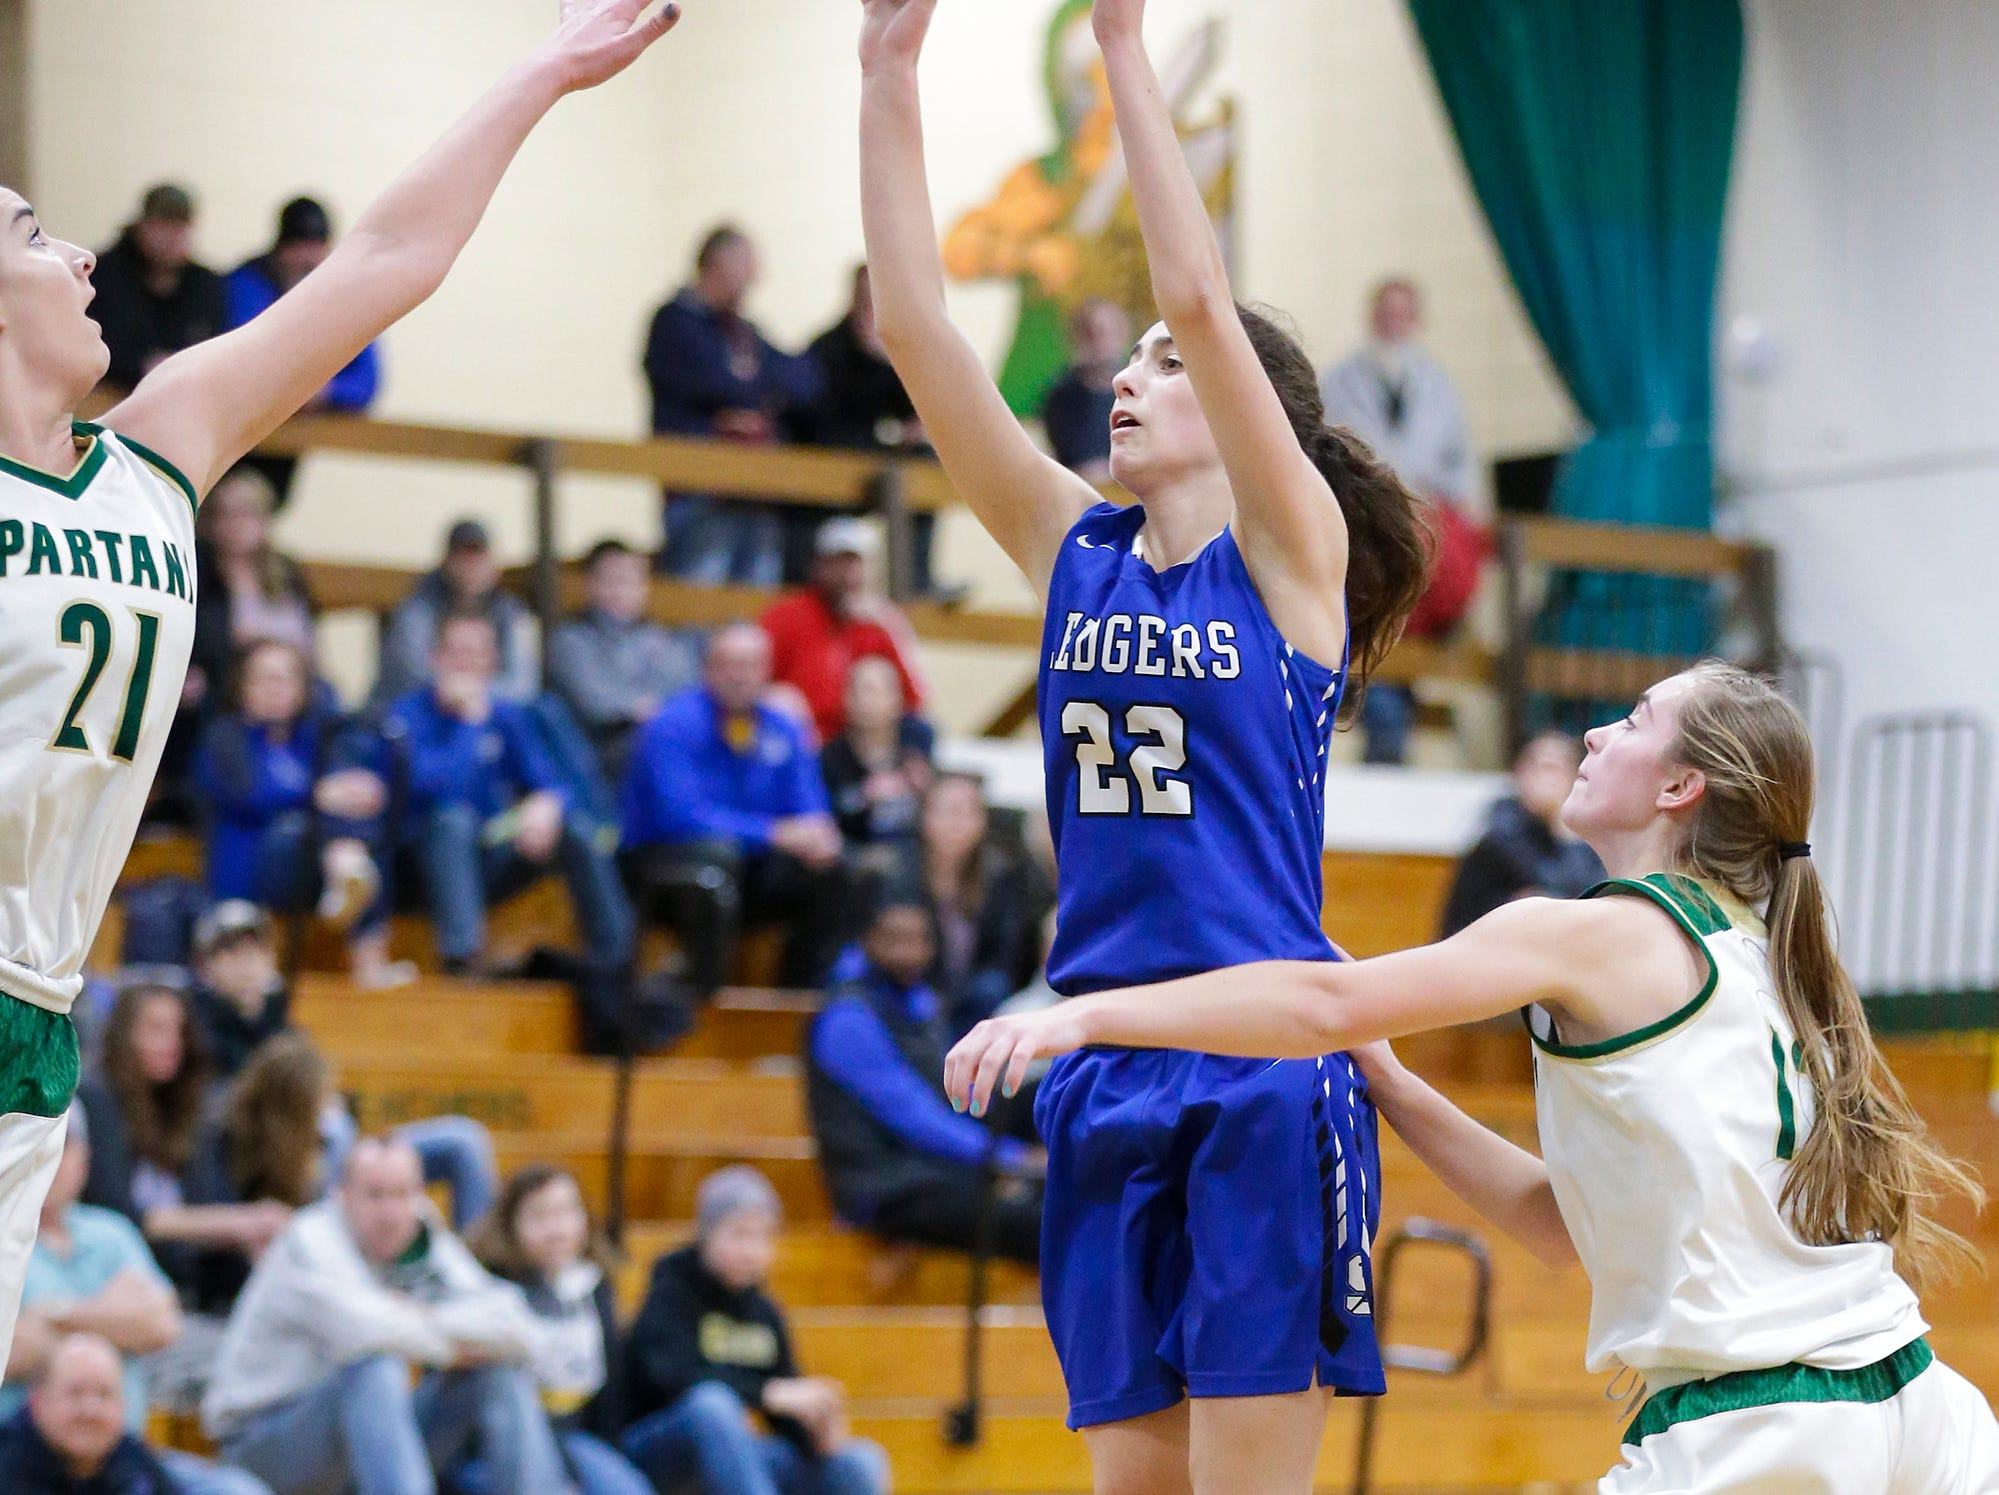 St. Mary's Springs Academy girls basketball's Isabelle Coon shoots a basket against Laconia High School's Alissa Dins (21) and Lexy Smit (12) Tuesday, January 15, 2019 during their game in Rosendale. Laconia won the game 57-45. Doug Raflik/USA TODAY NETWORK-Wisconsin